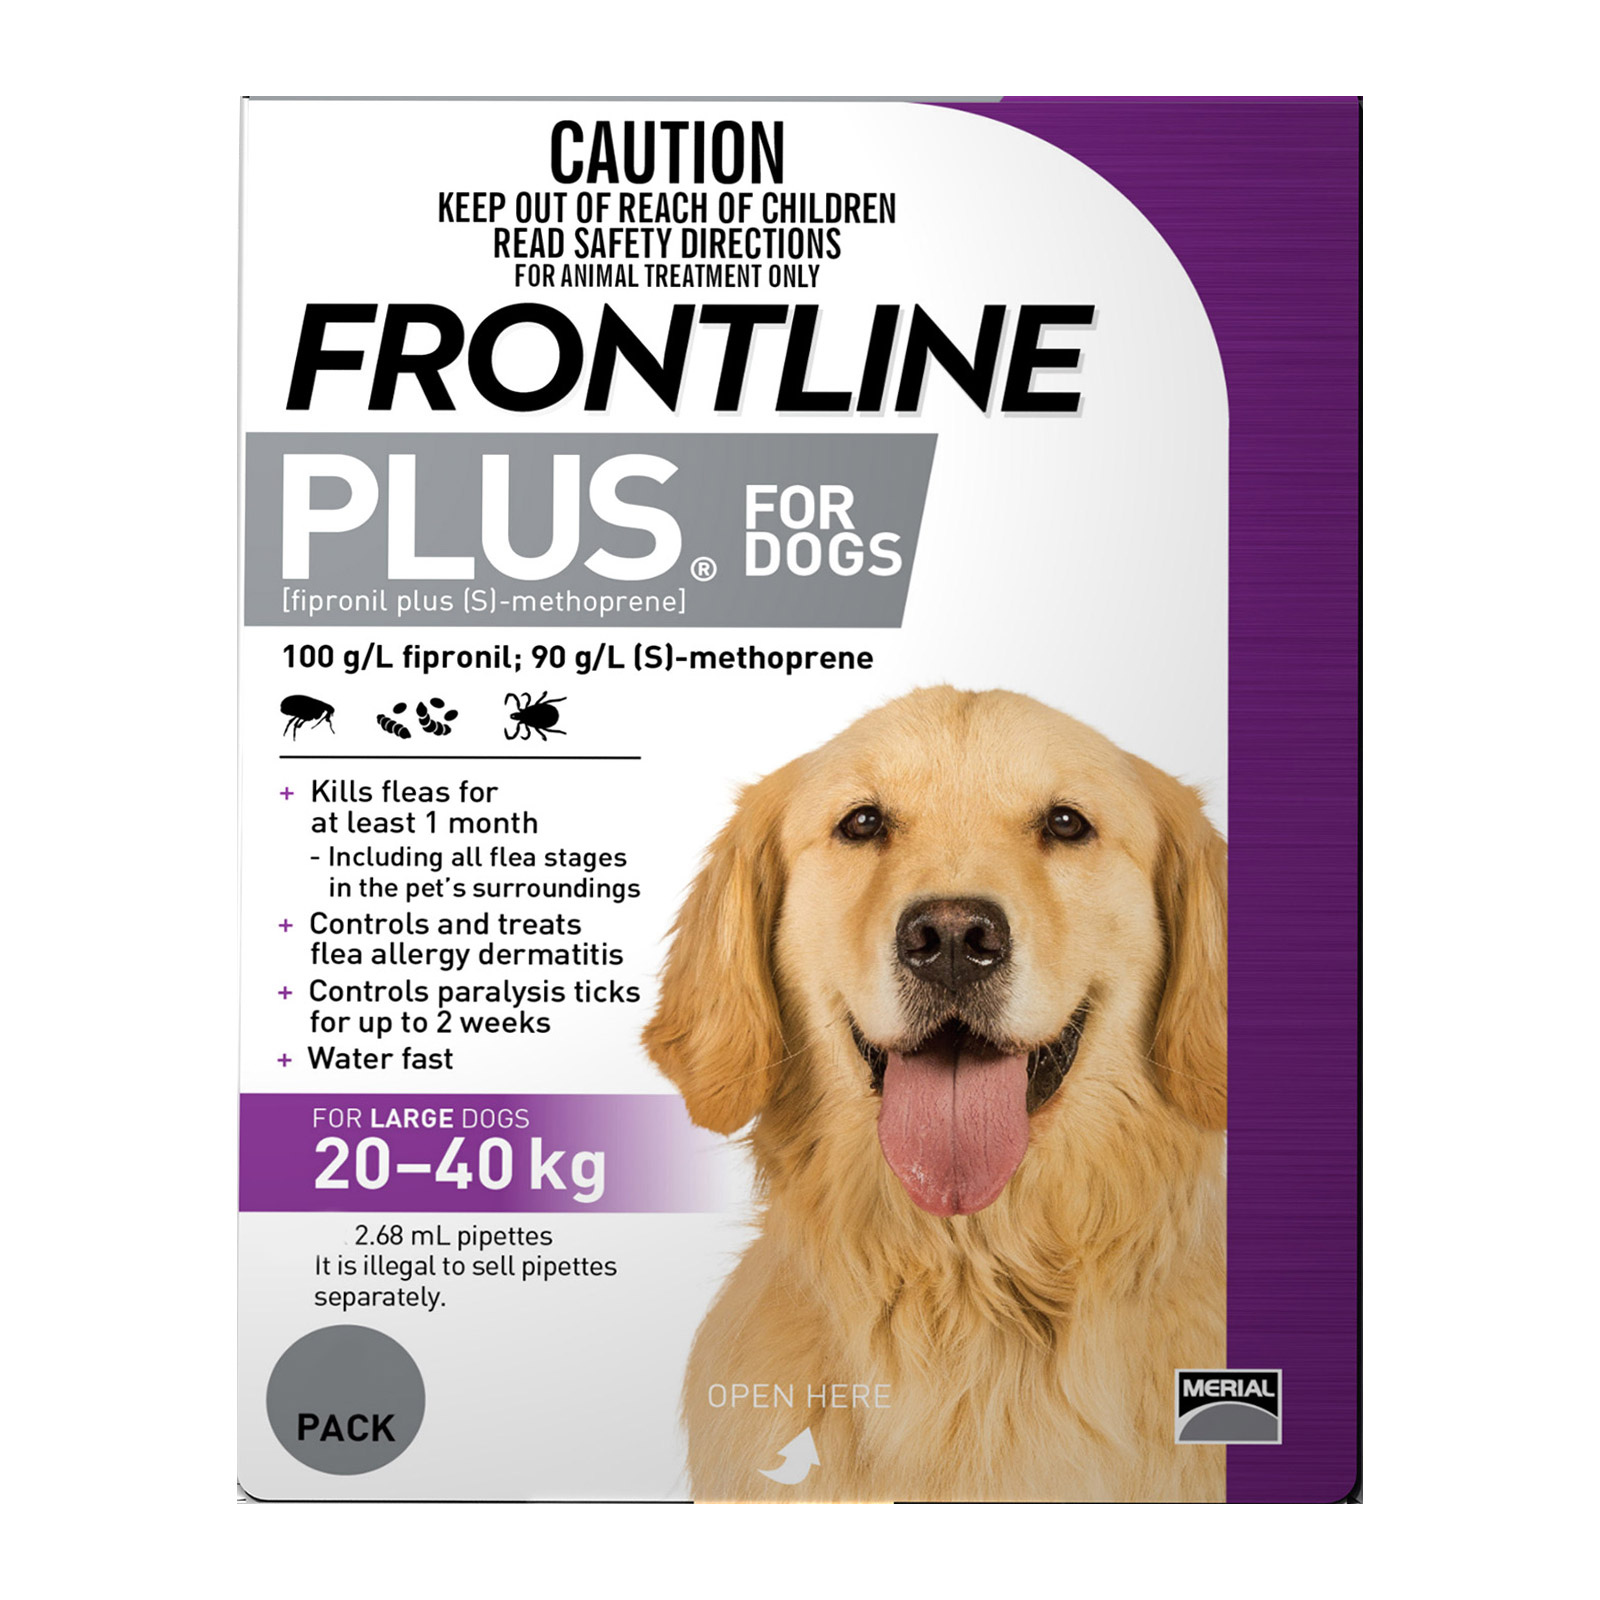 frontline-plus-for-large-dogs-20-to-40-kg-purple.jpg